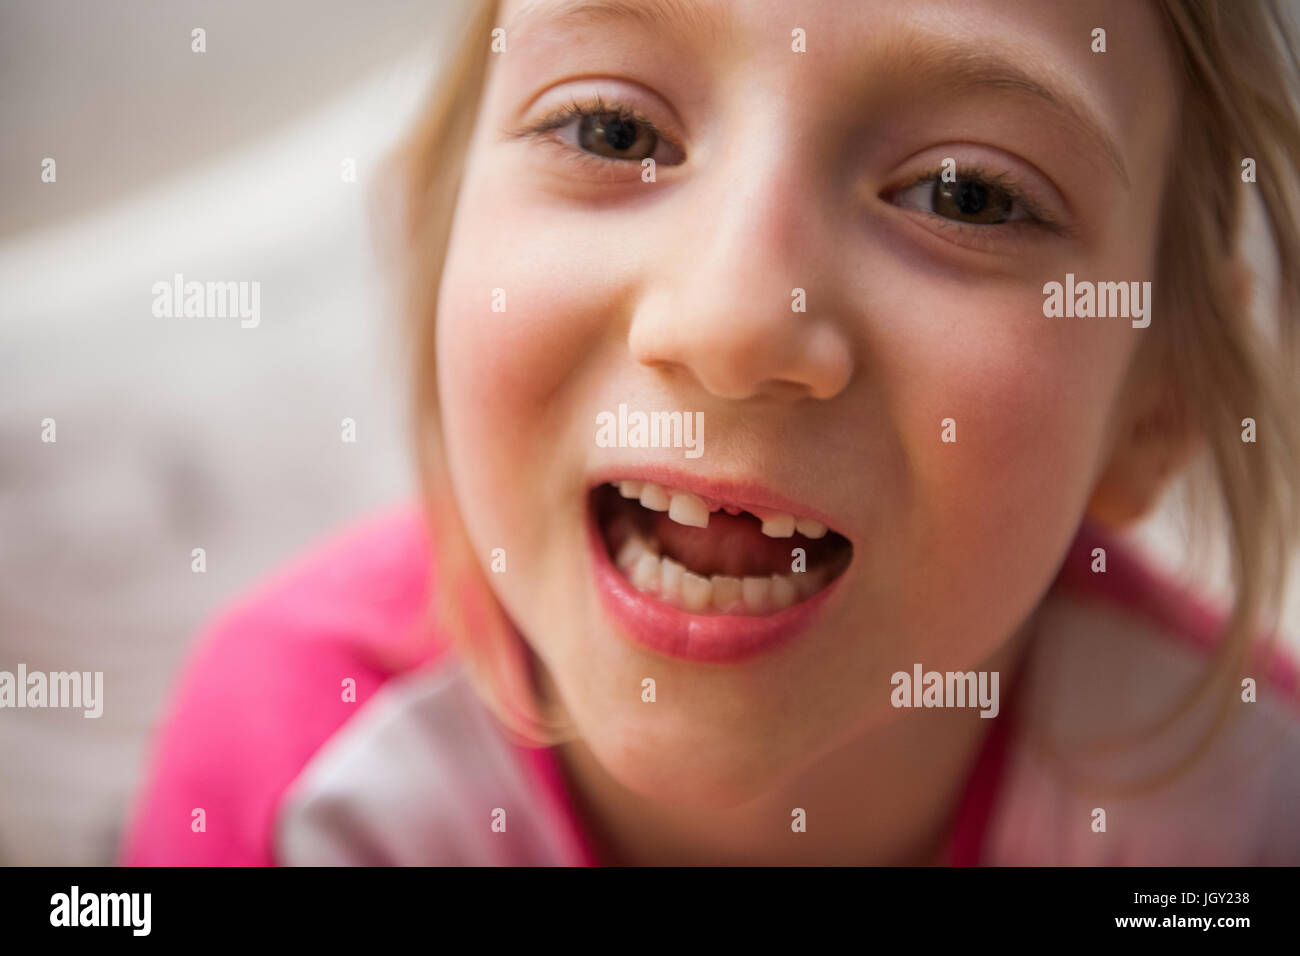 Portrait of girl with missing tooth looking at camera mouth open - Stock Image